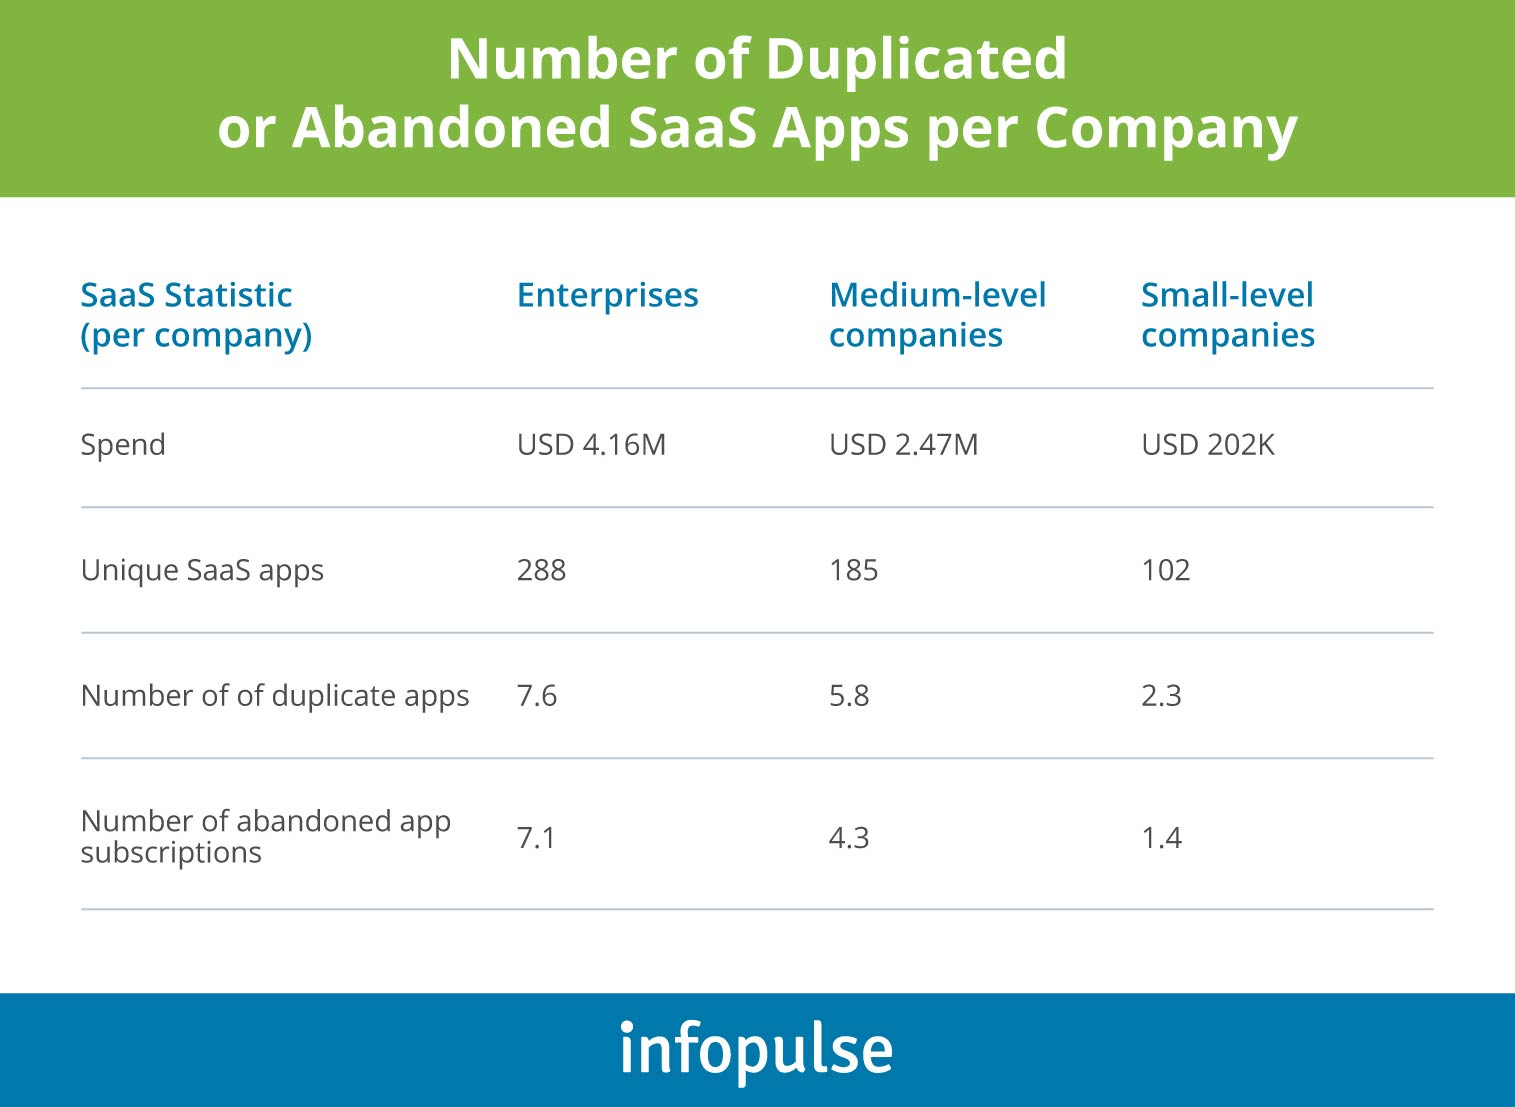 Number of Duplicated or Abandoned SaaS Apps per Company - Infopulse - 1